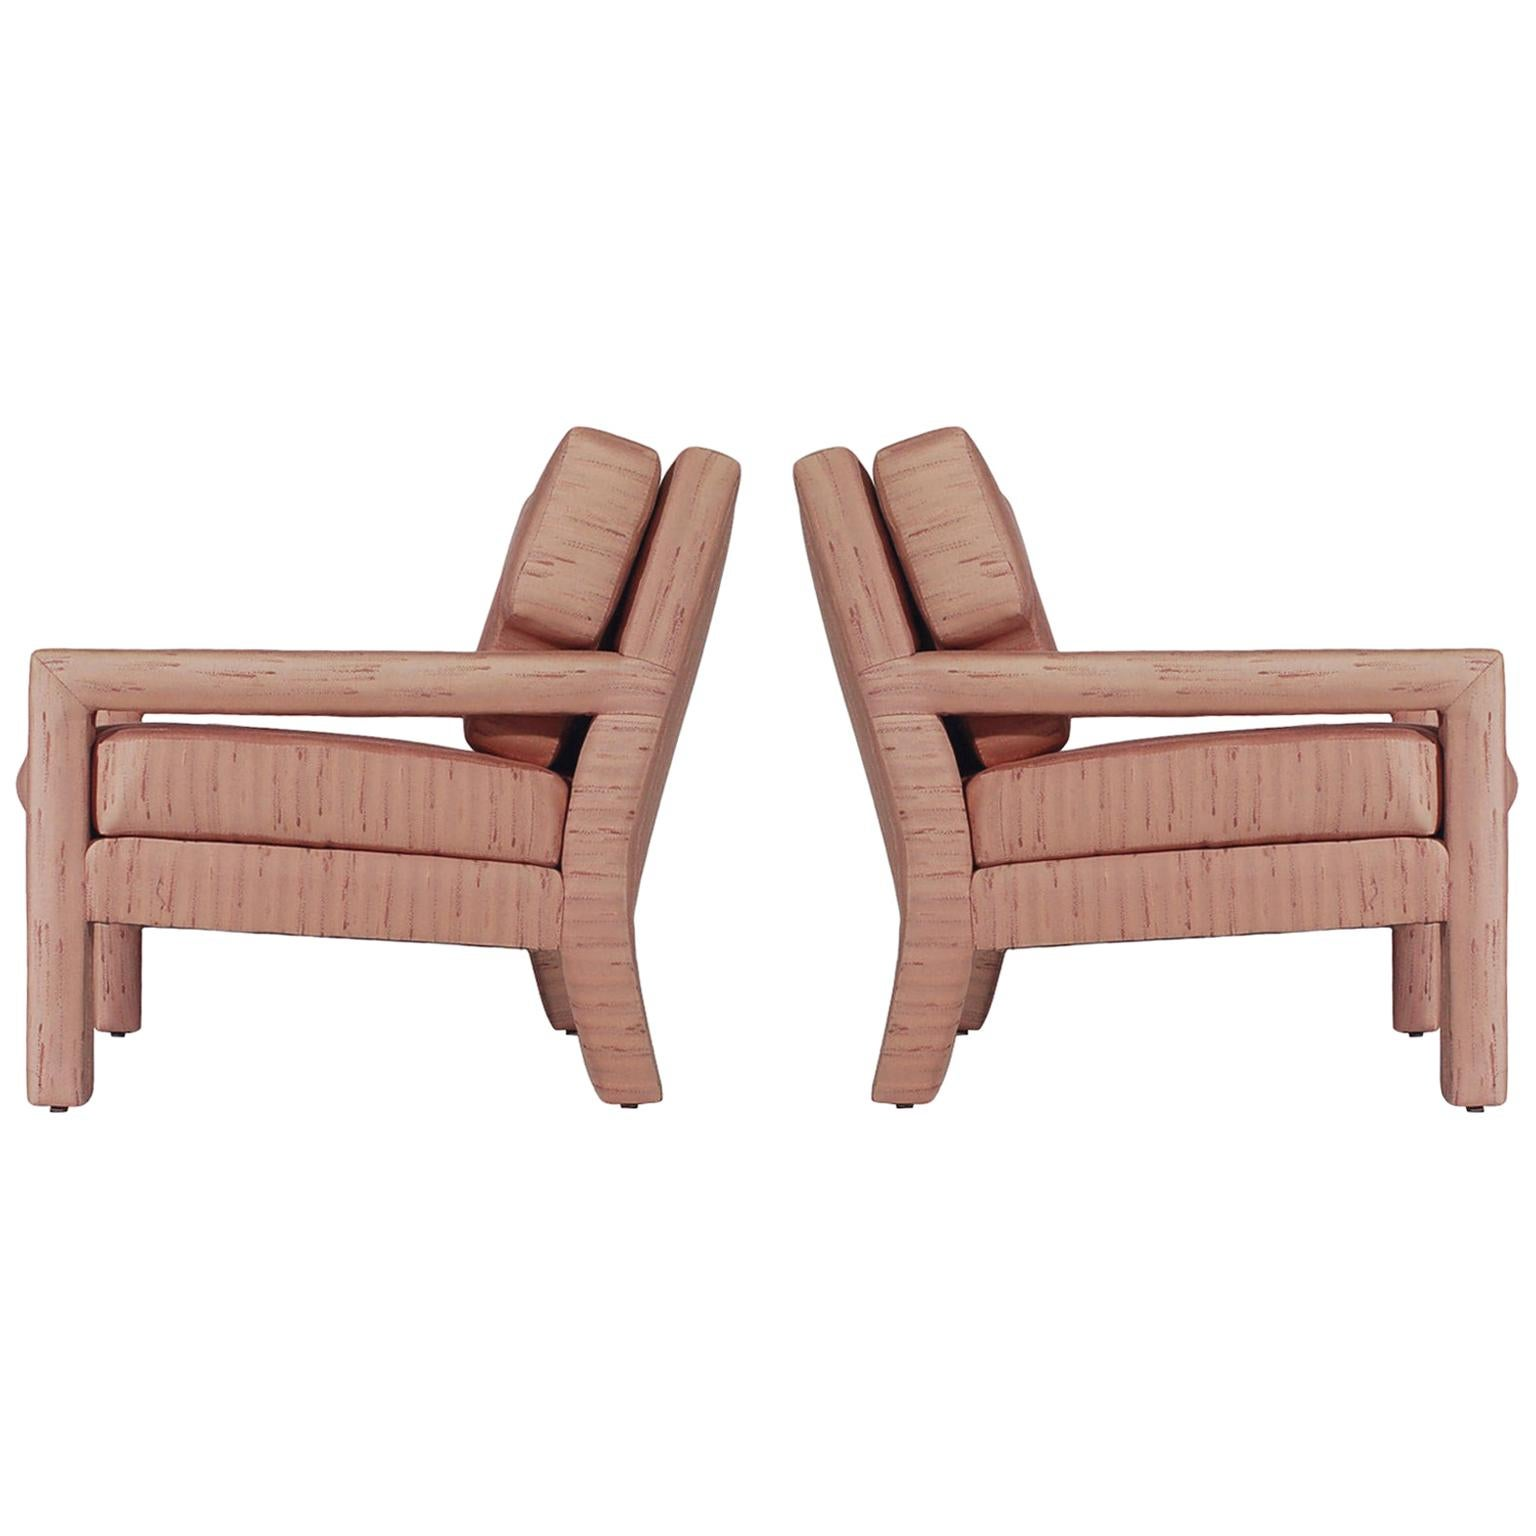 Pair of Mid-Century Modern Parsons Lounge or Club Chairs after Milo Baughman